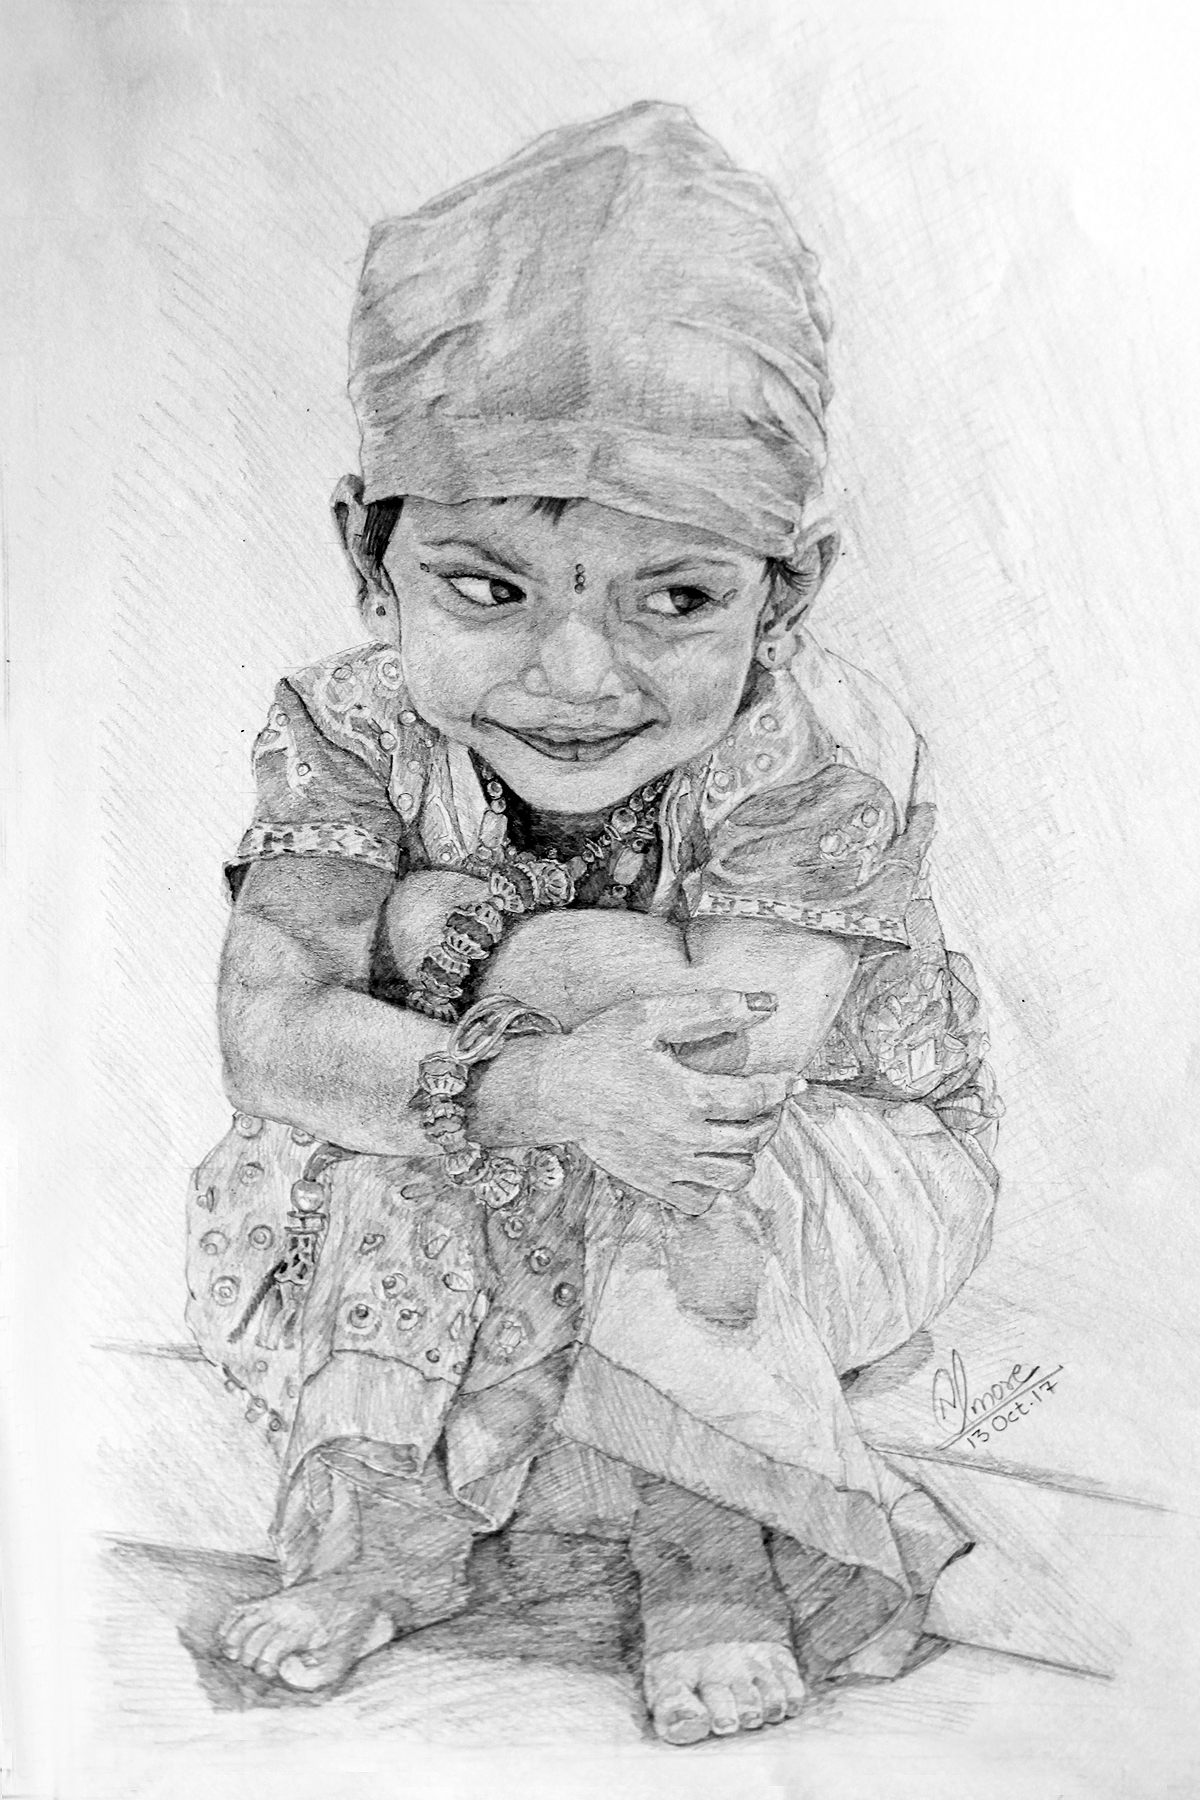 Baby smiling Sketch by Nitish More